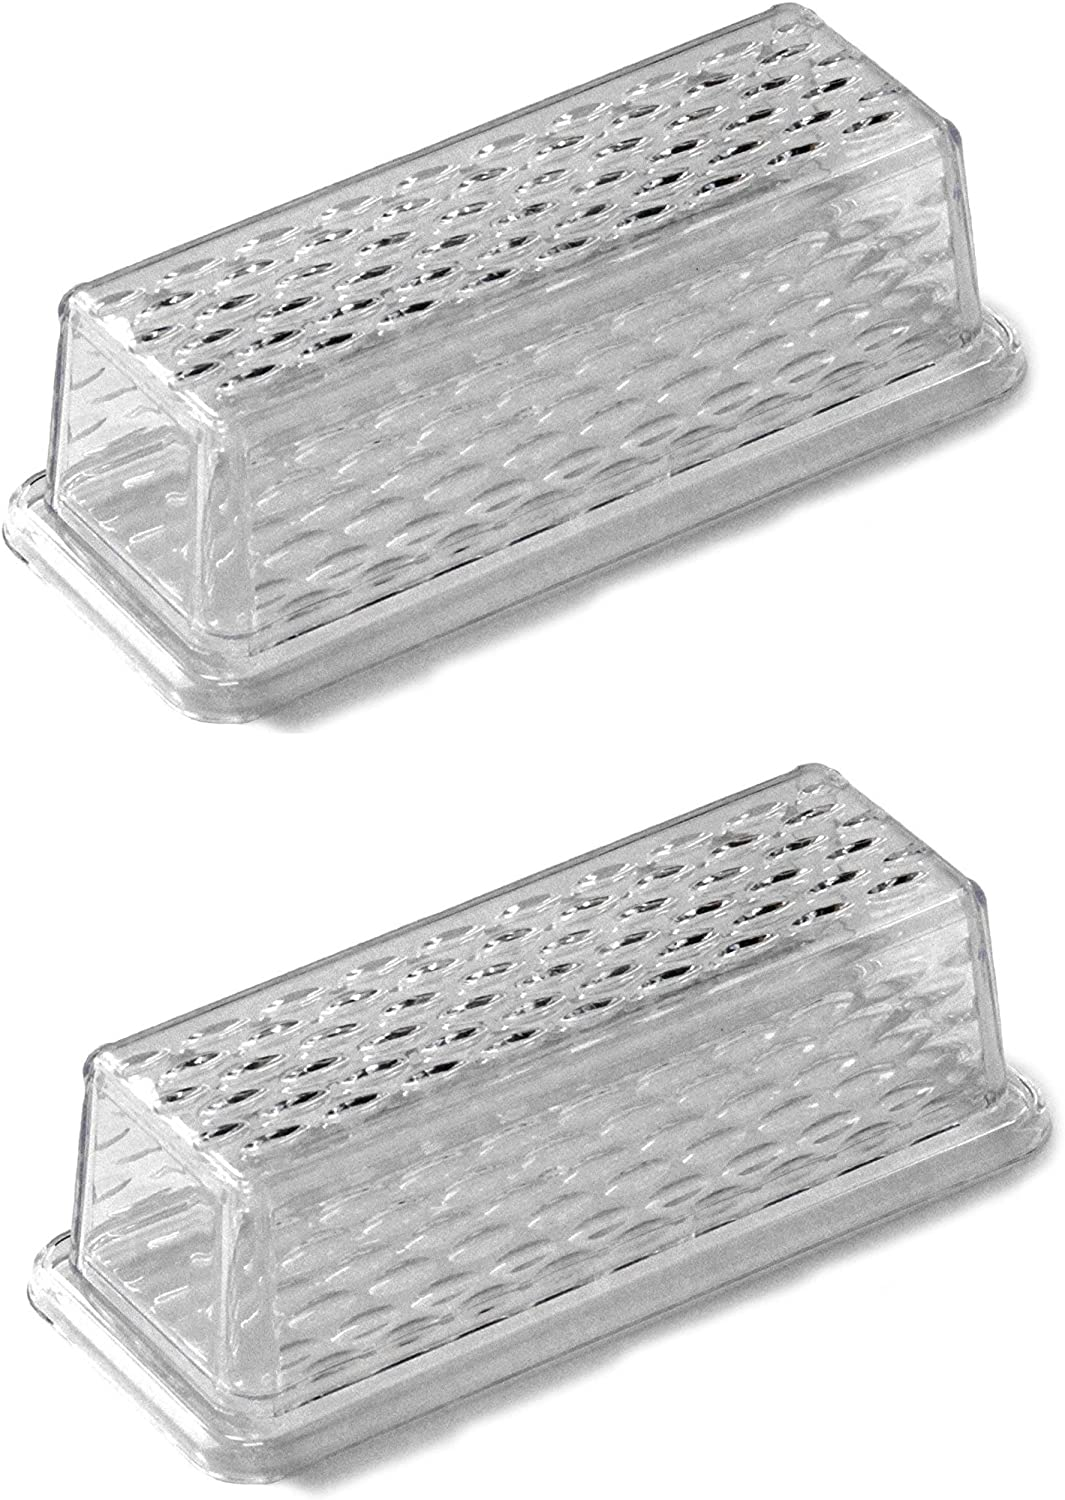 """Chef Craft 21458-2PK Clear Plastic Butter Dish with Crystalline Design Cover 